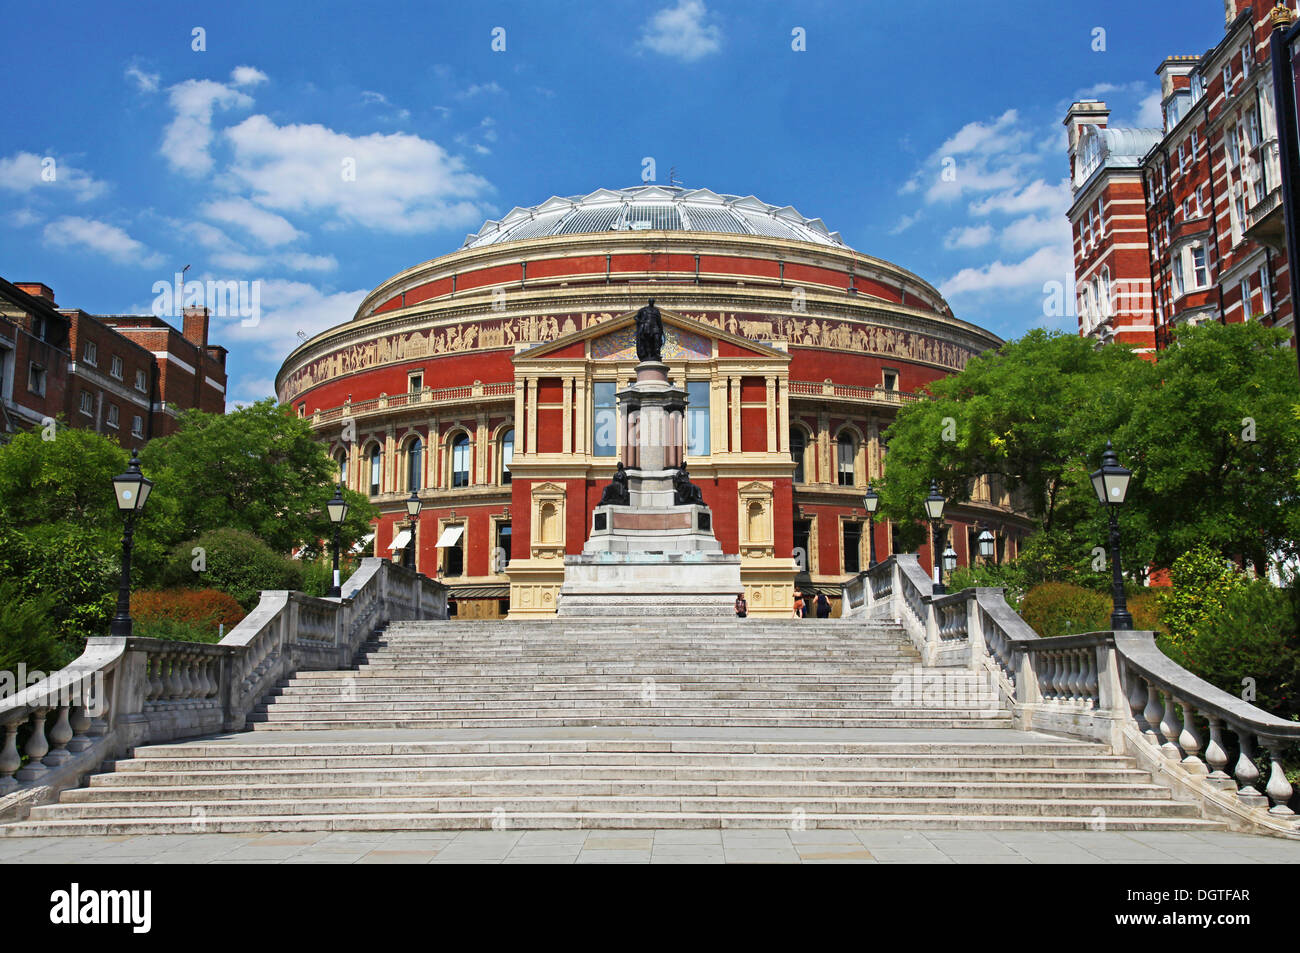 The Royal Albert Hall in London - Stock Image